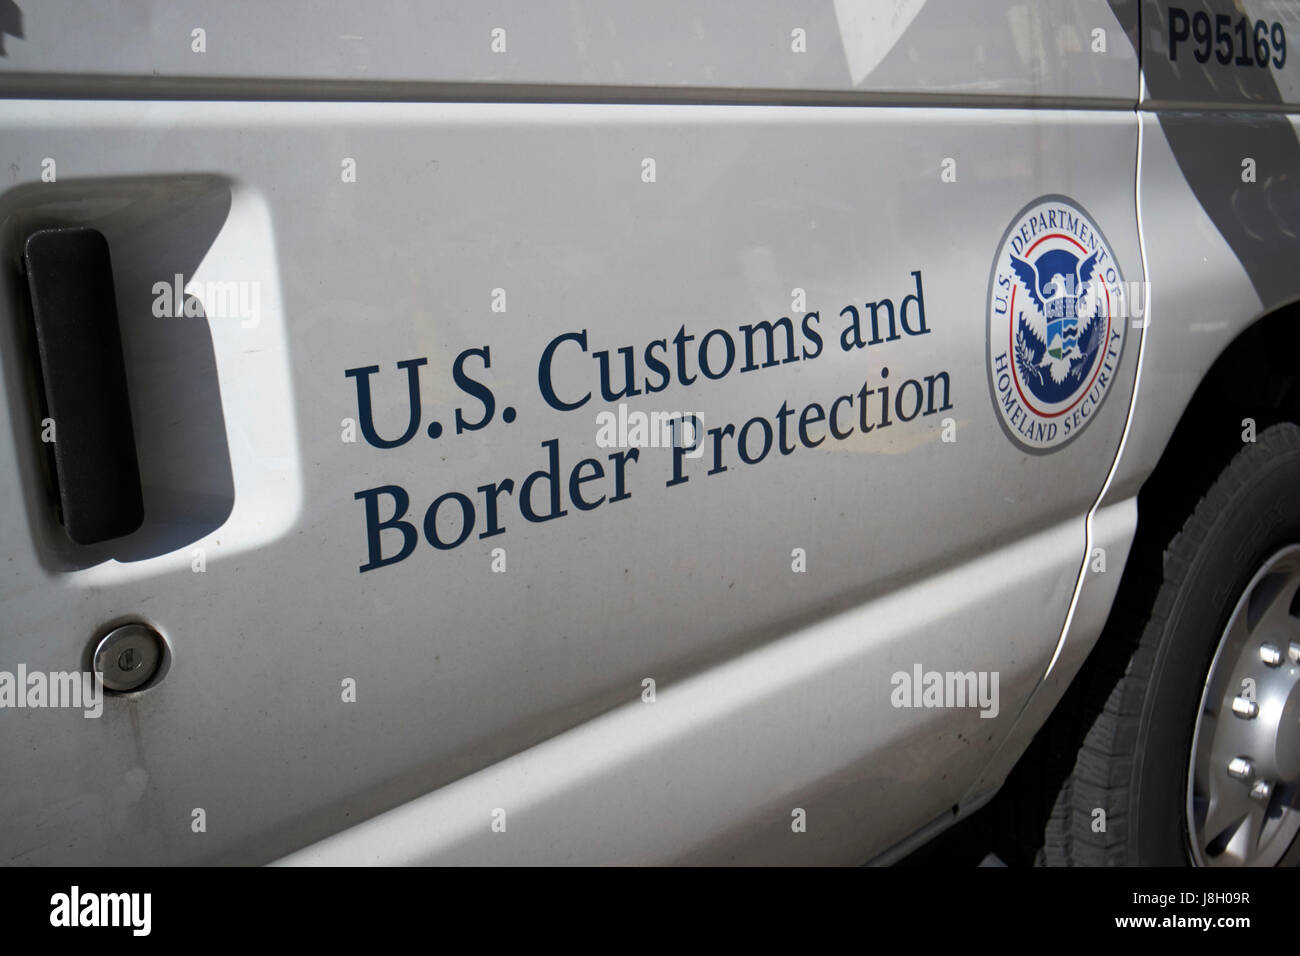 department of homeland security u.s. customs and border protection service vehicle crest and logo New York City - Stock Image